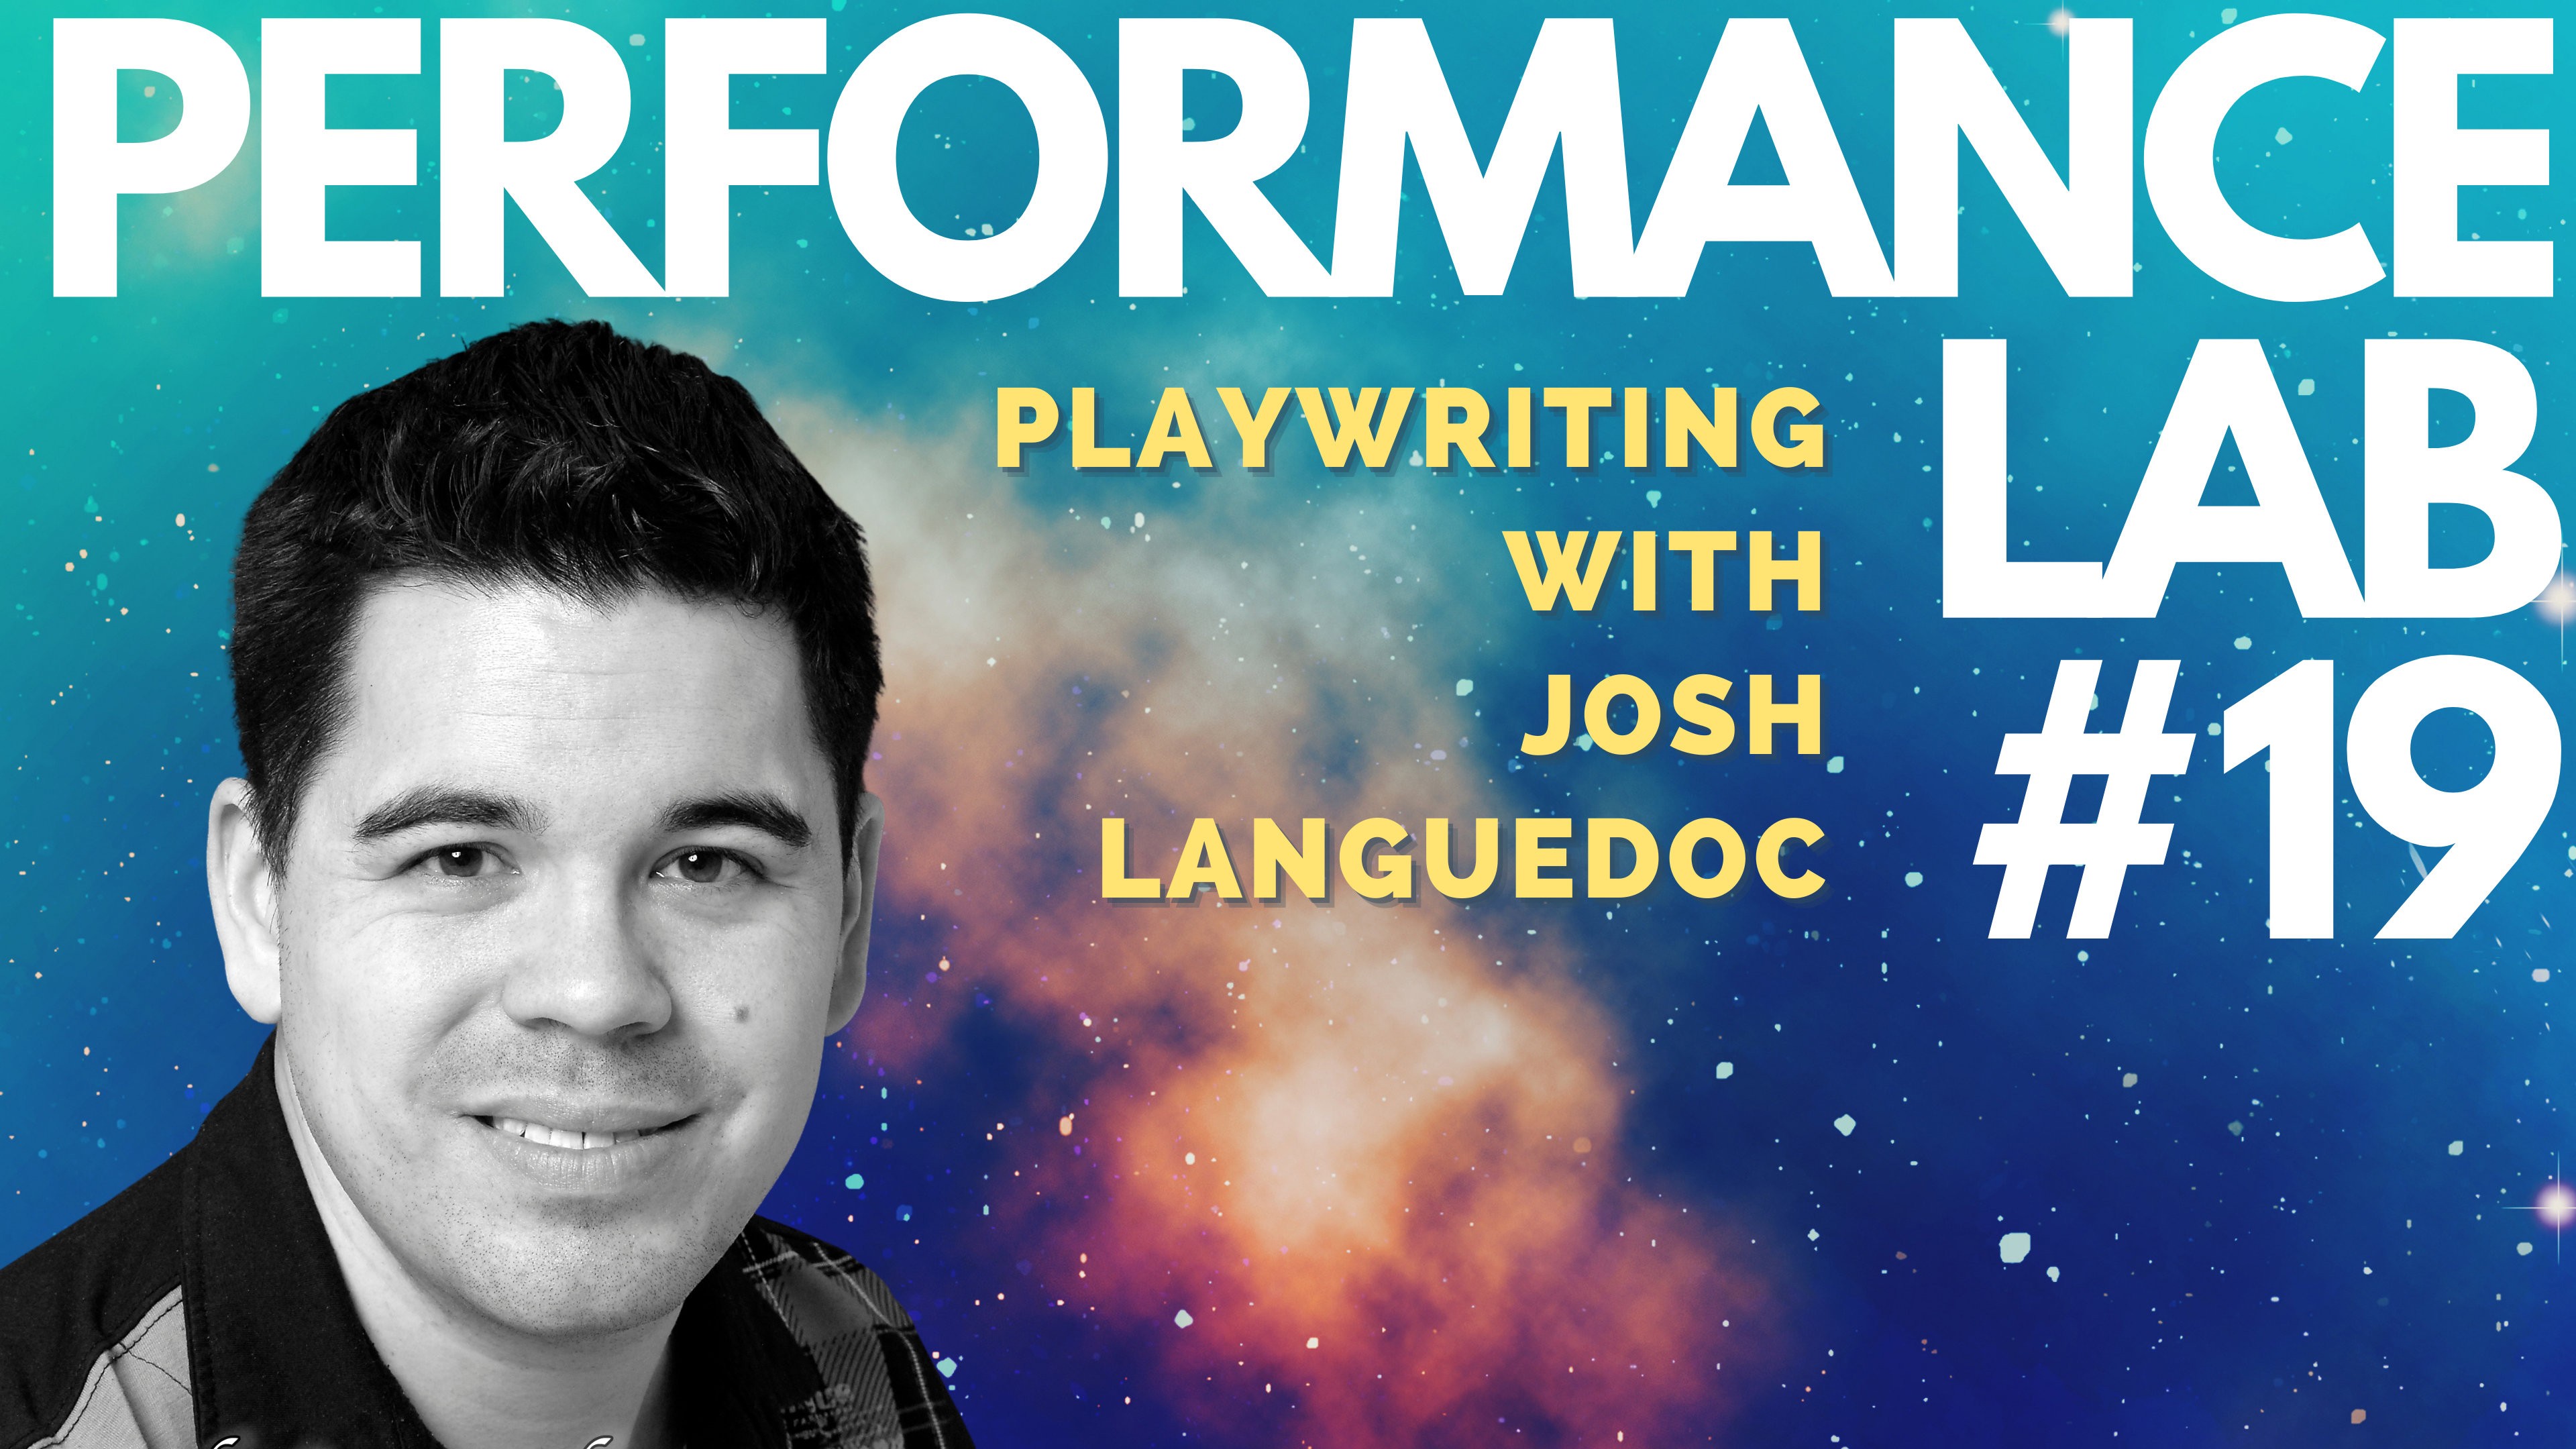 Josh Languedoc, with the text Performance Lab #19. Playwriting with Josh Languedoc, Link in Bio. Josh and text are layered on a background of a bright blue, indigo and orange galaxy.